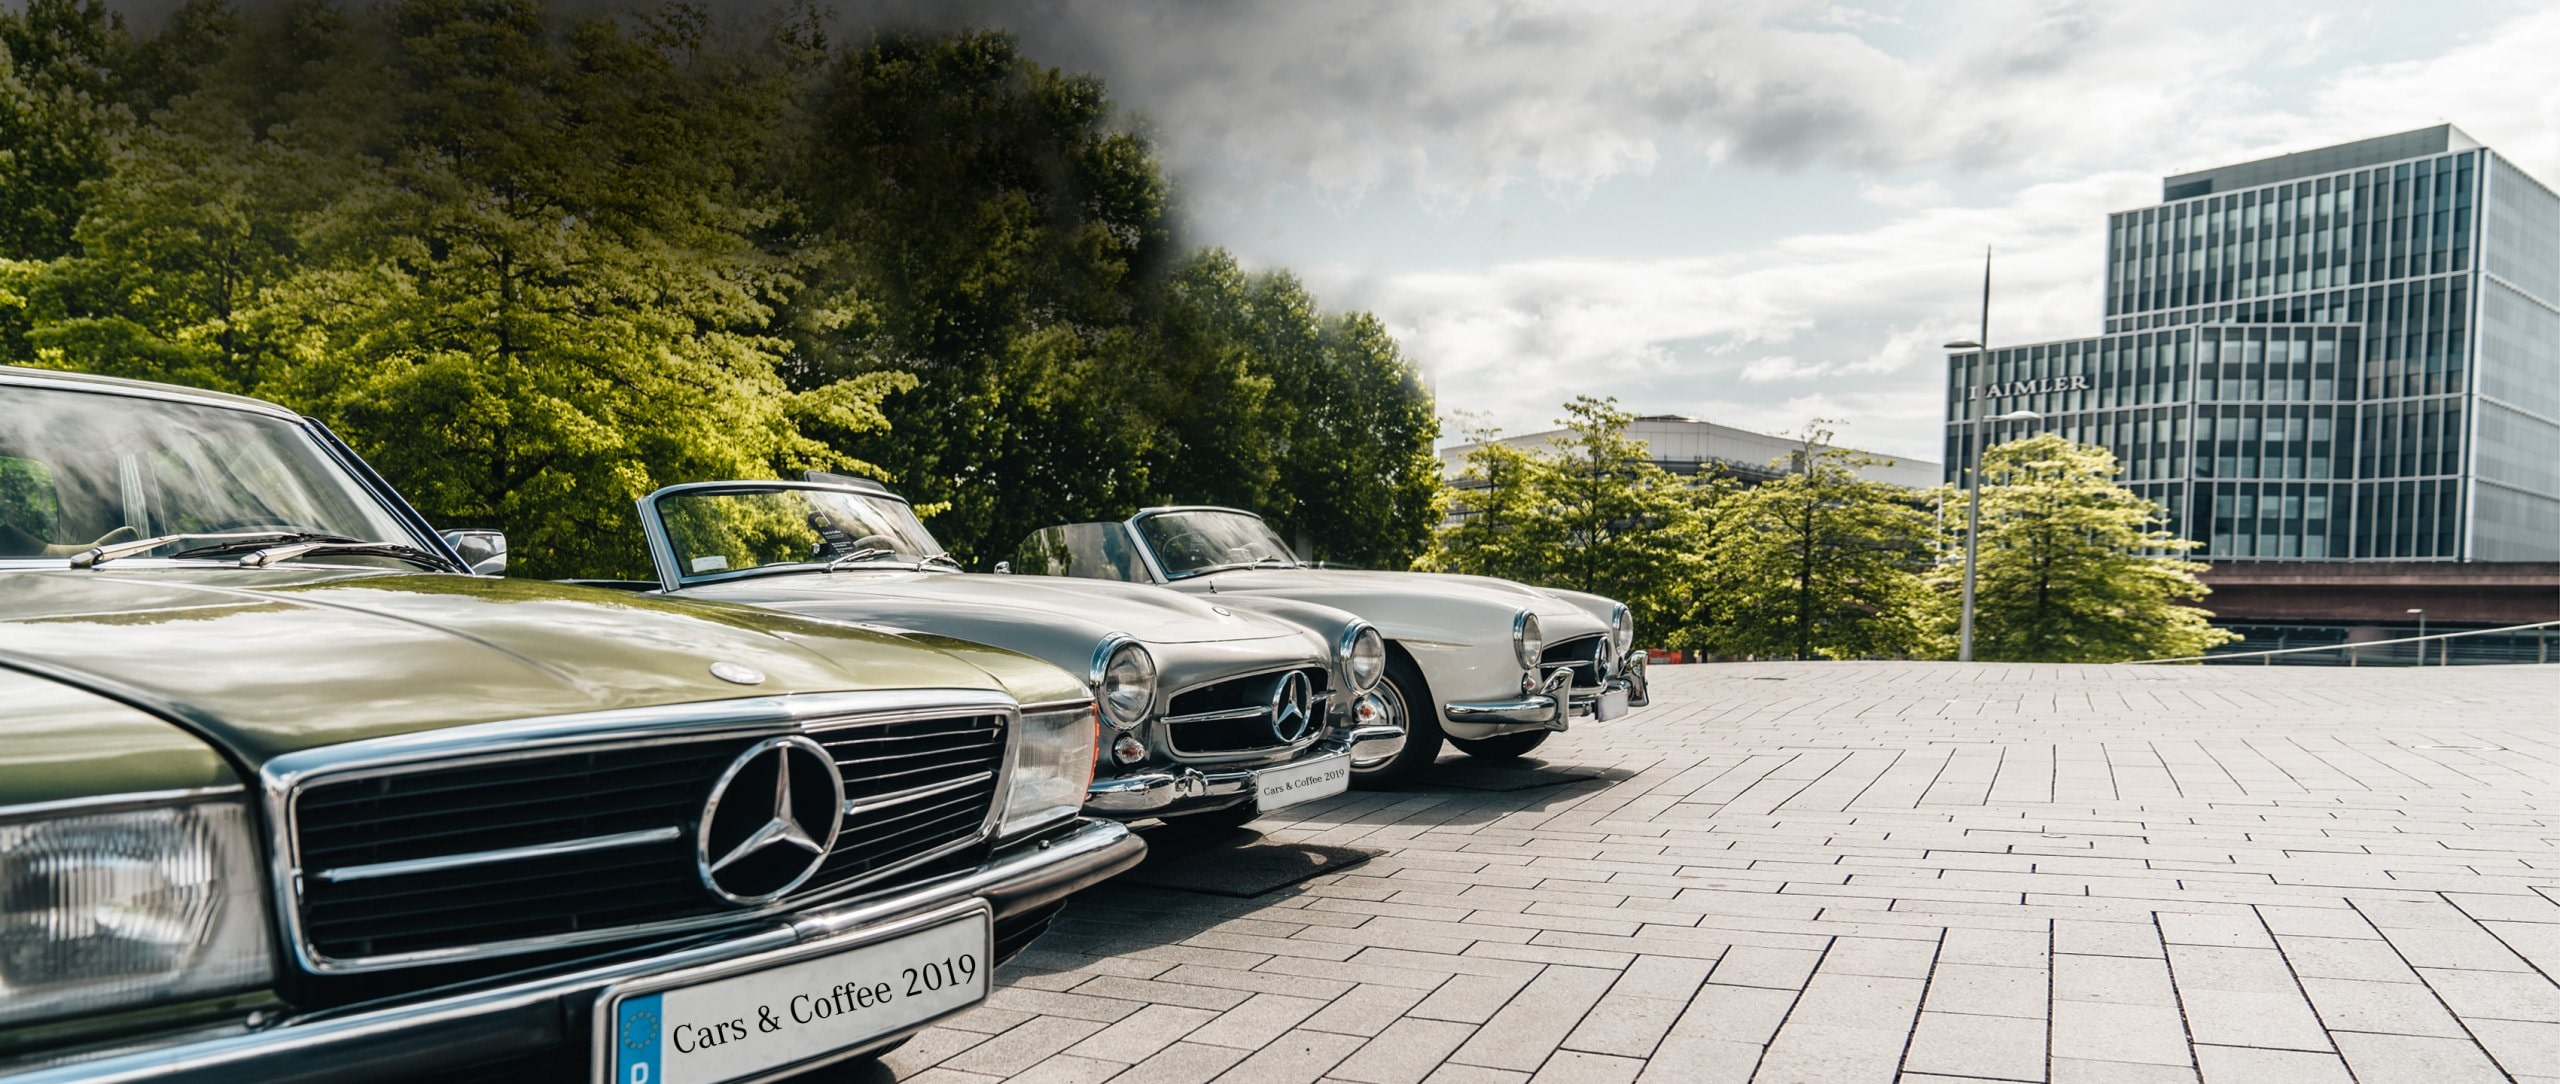 """Cars & Coffee"" at the Mercedes-Benz Museum."